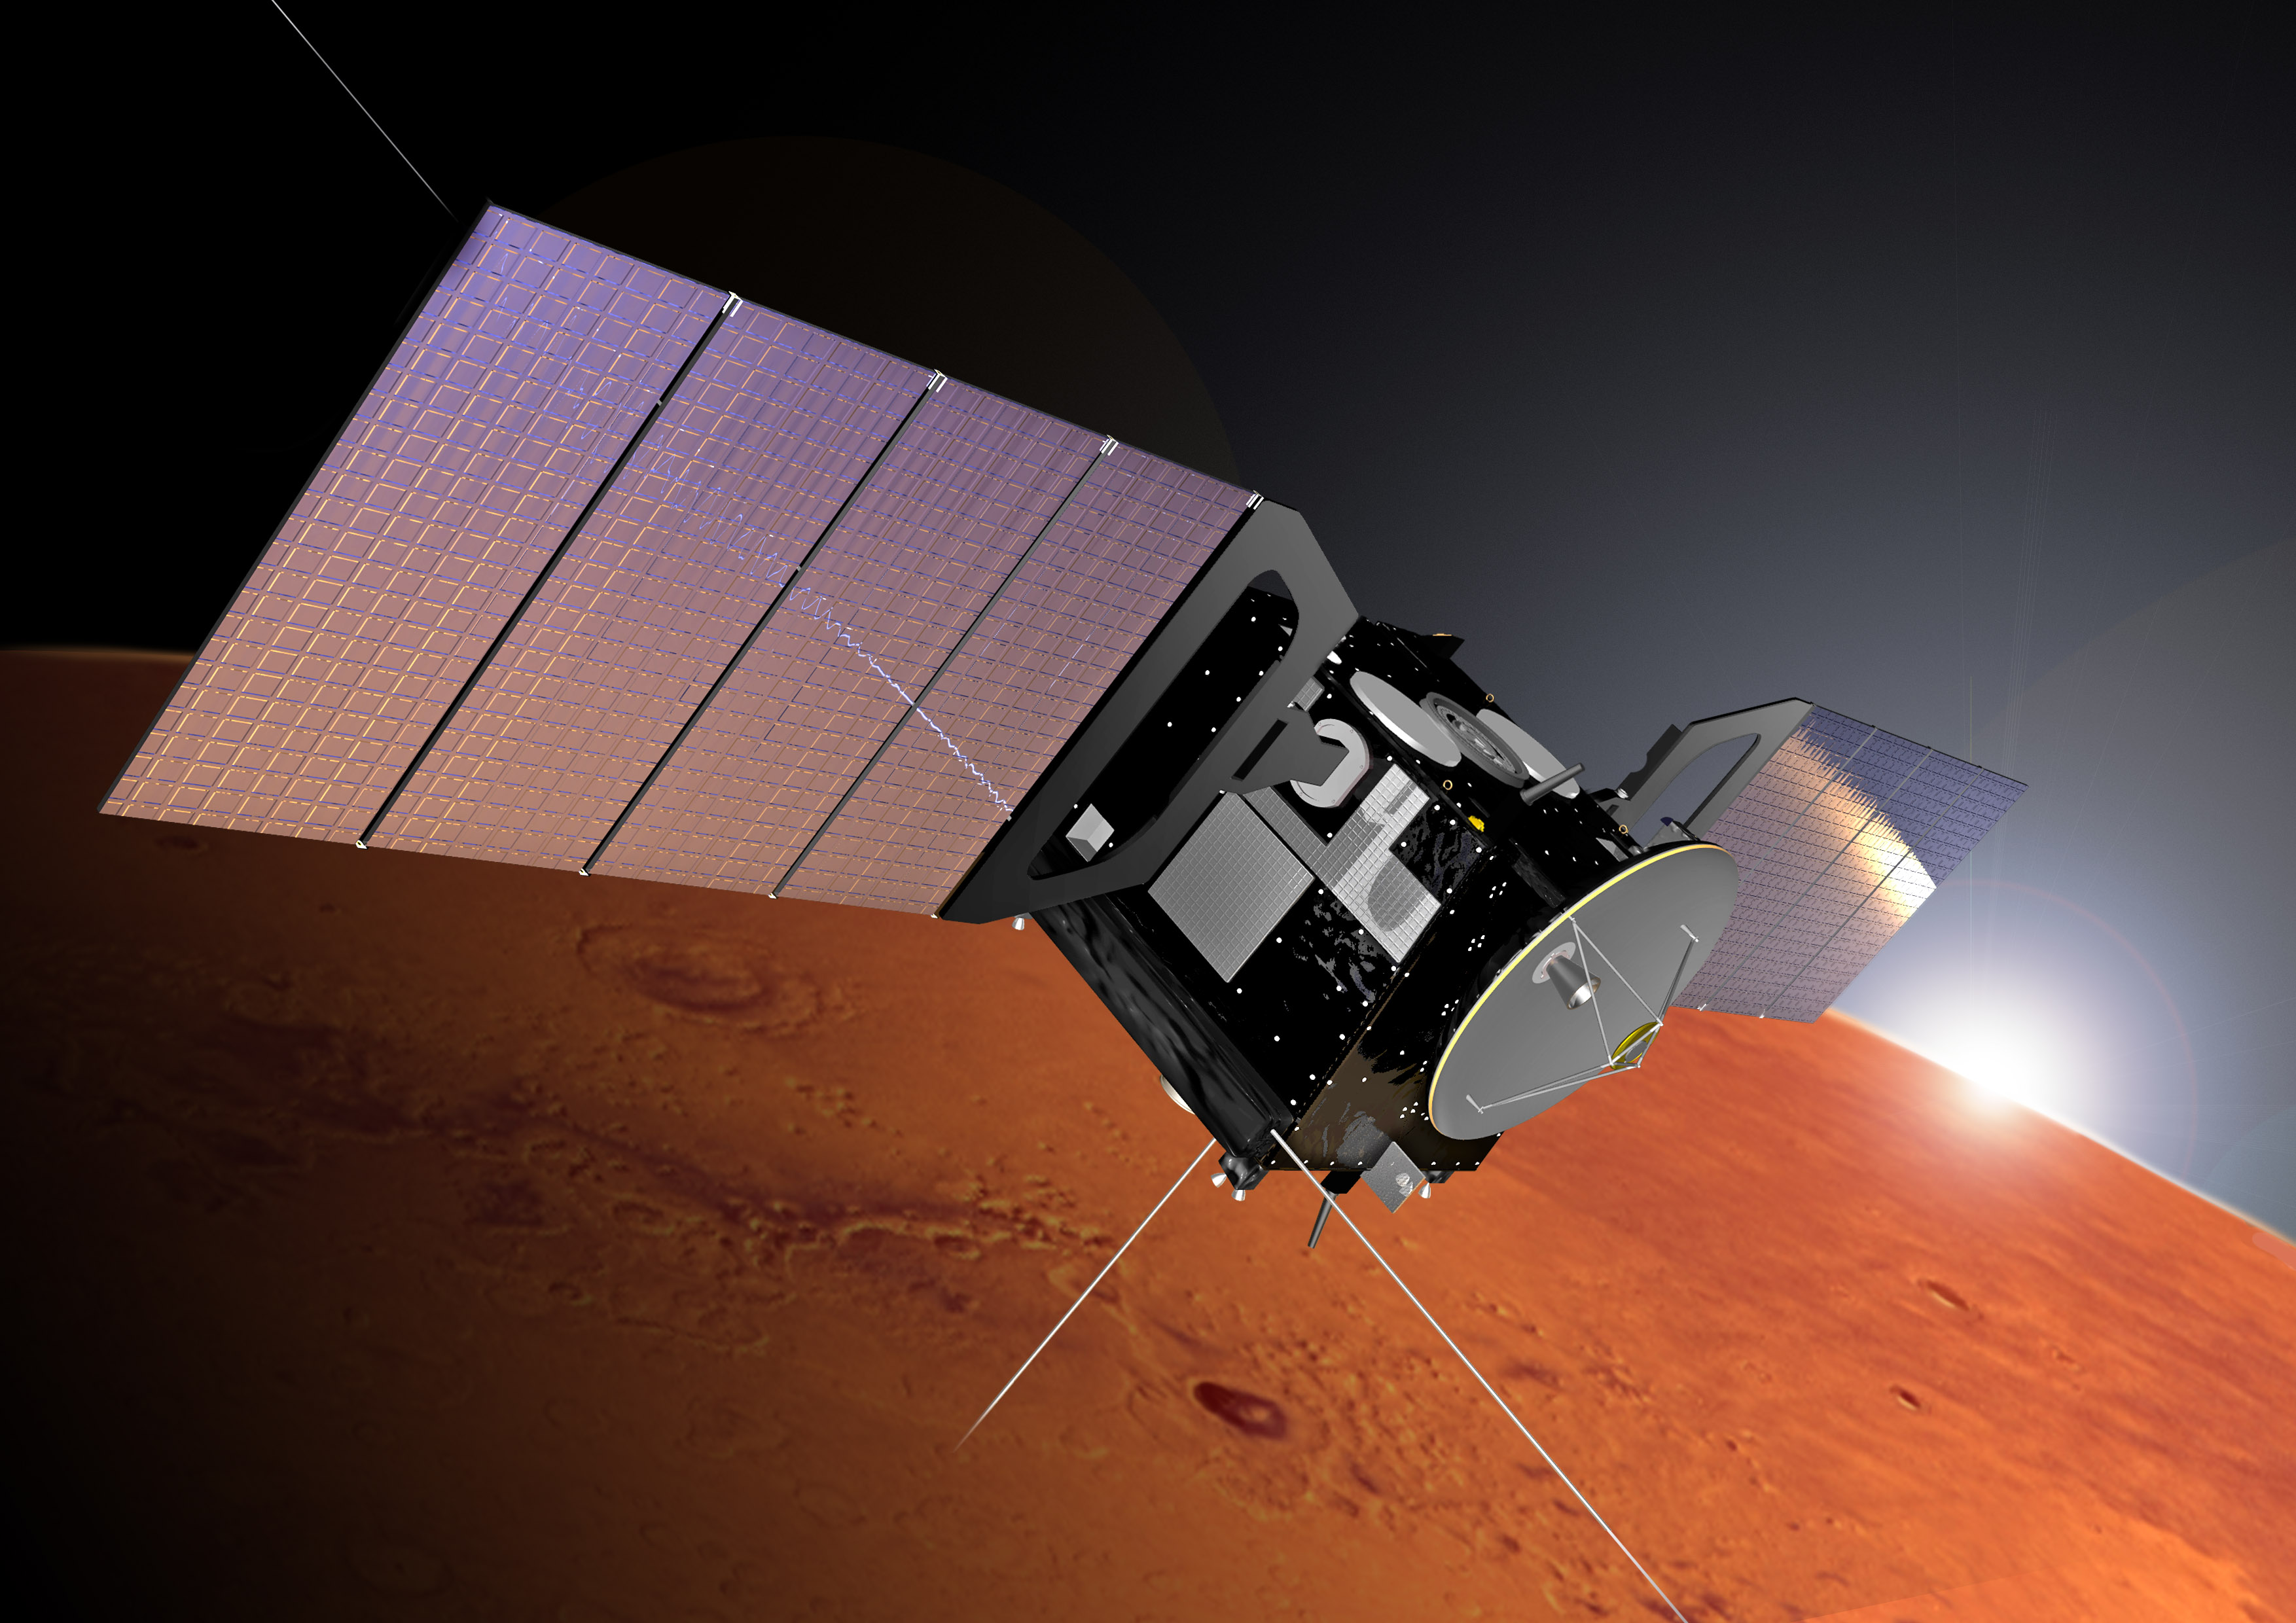 Mars Express Esa S Mission To The Red Planet